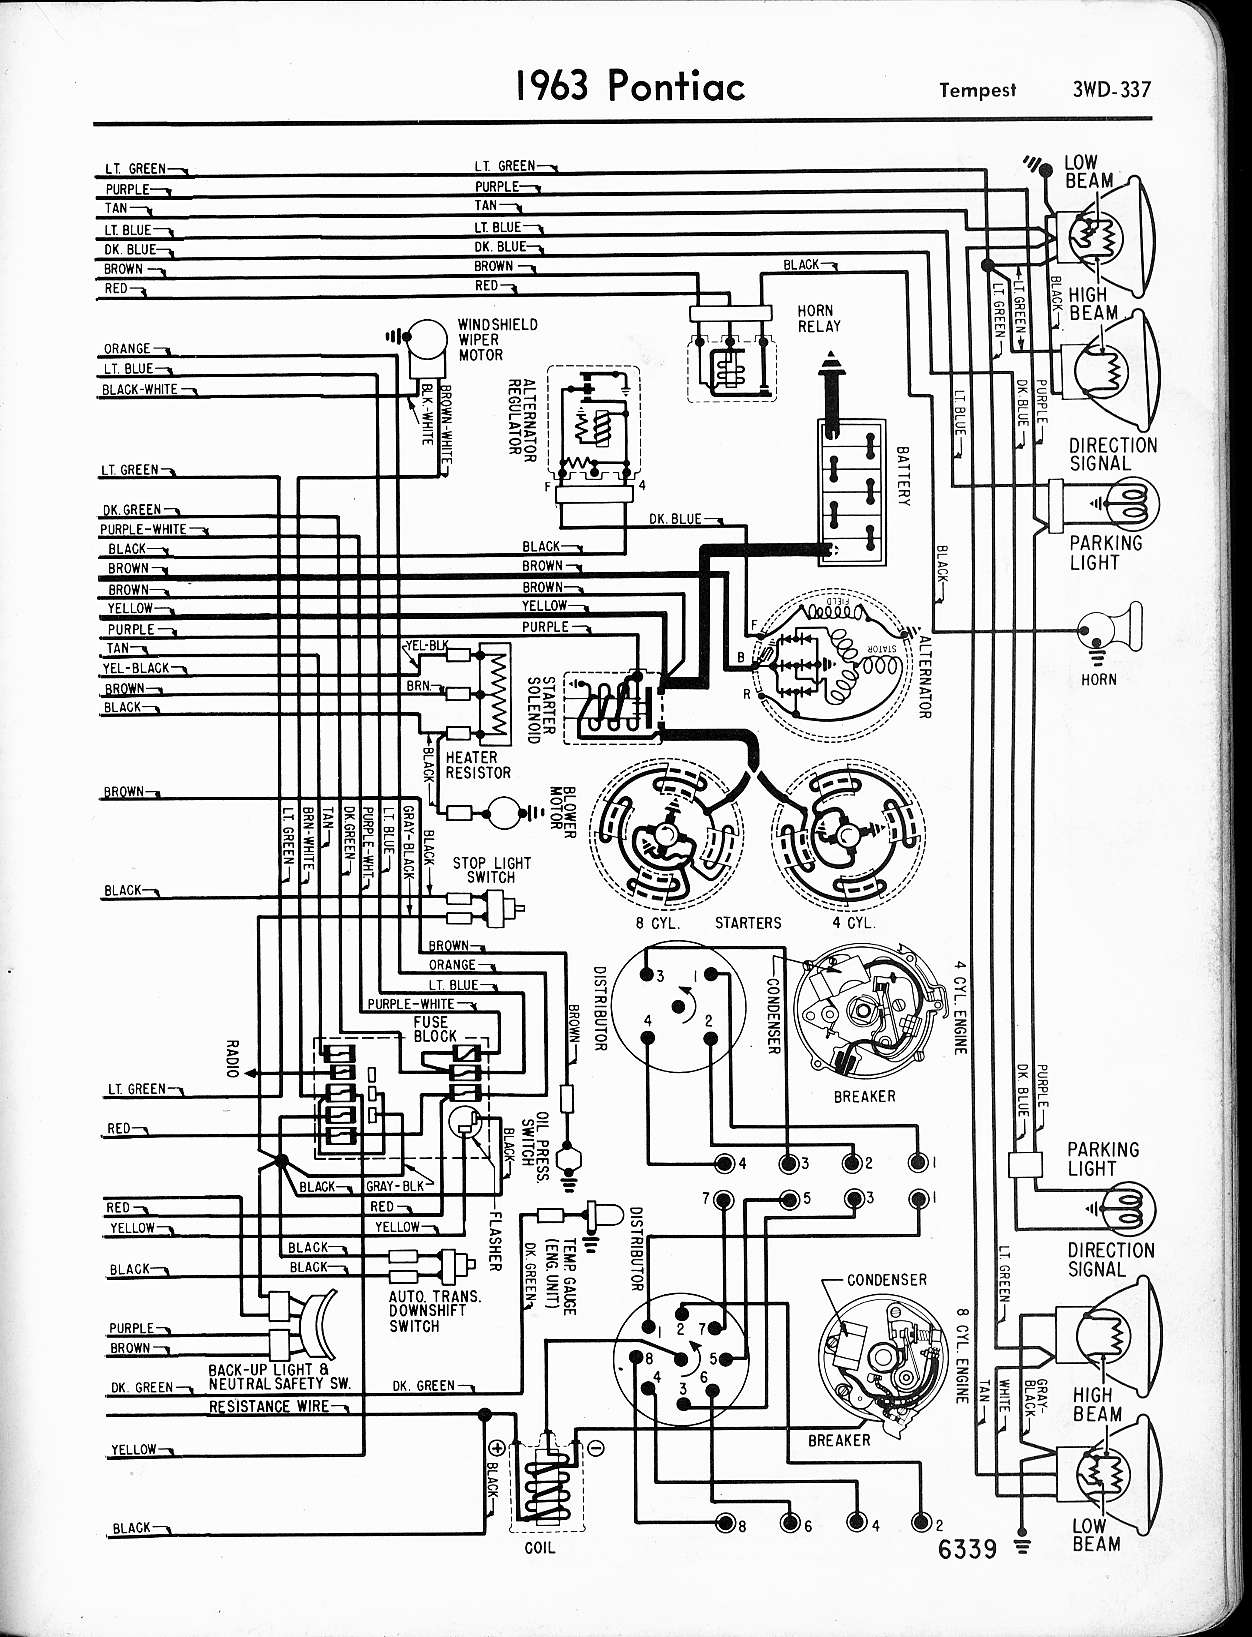 Pontiac Lights Wiring Diagram Schematics. Wallace Racing Wiring Diagrams  2007 Ford F150 Fuse Box Diagram